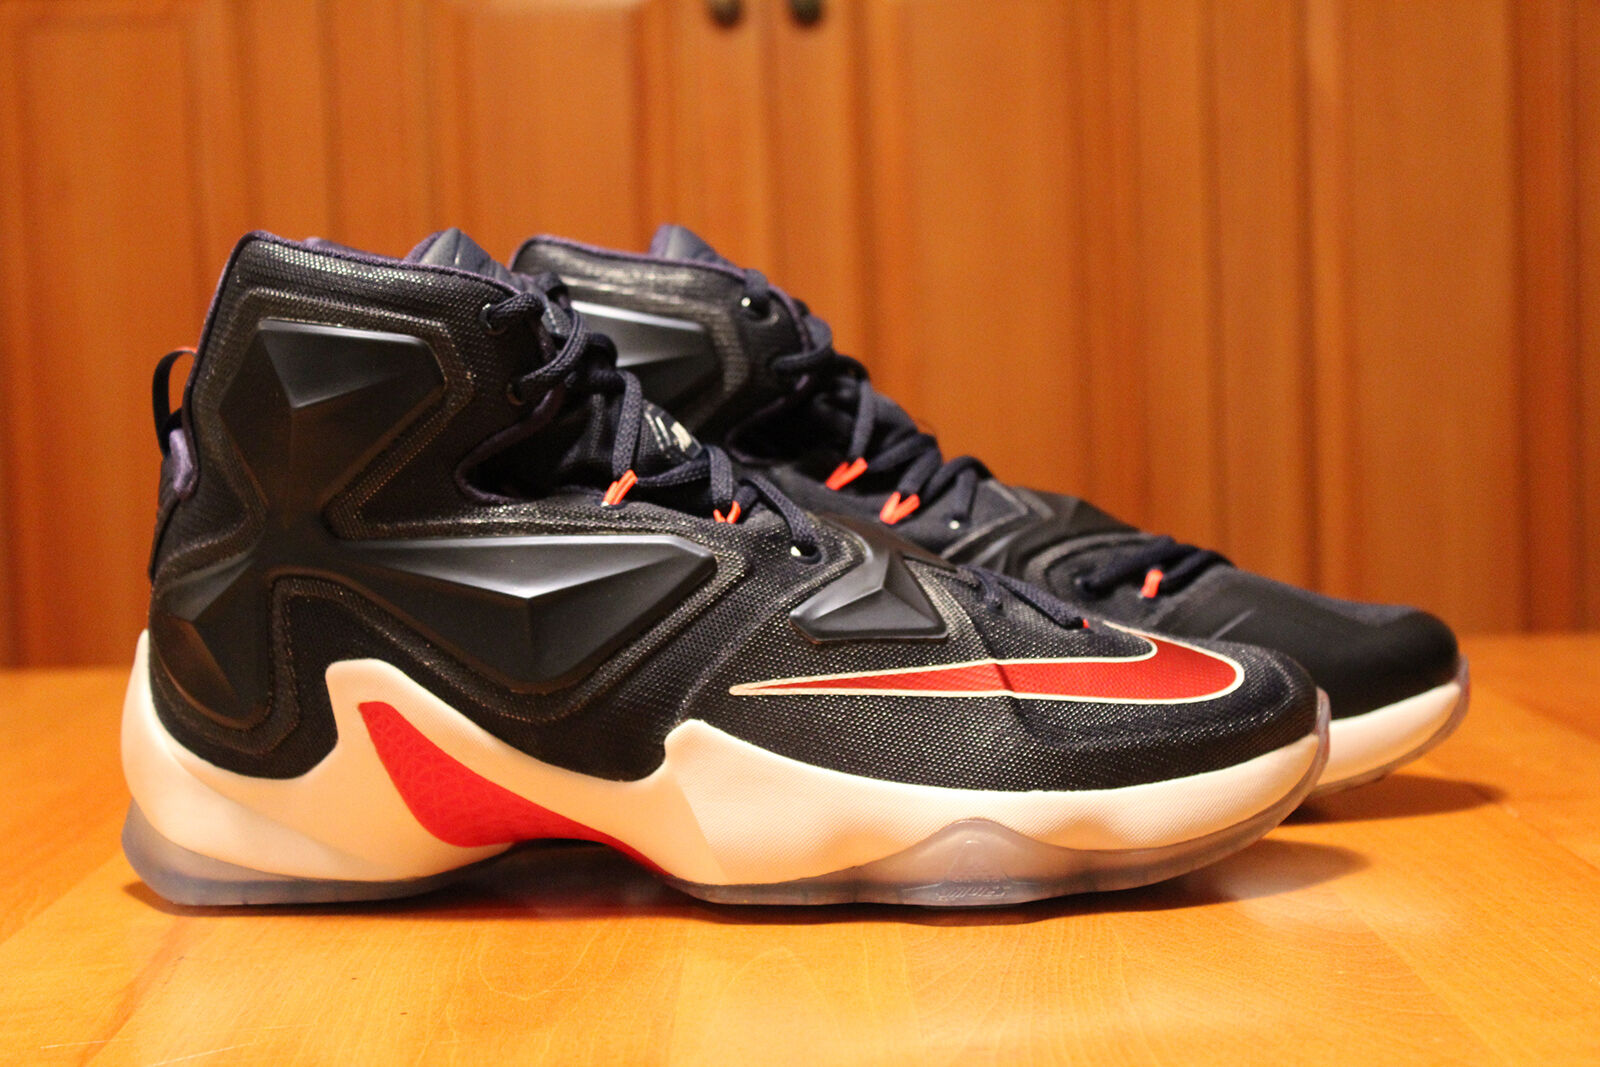 c564d5bed2 Lebron 13 XIII Nike retro DS 12 Basketball shoes USA nuehzf3846-new ...